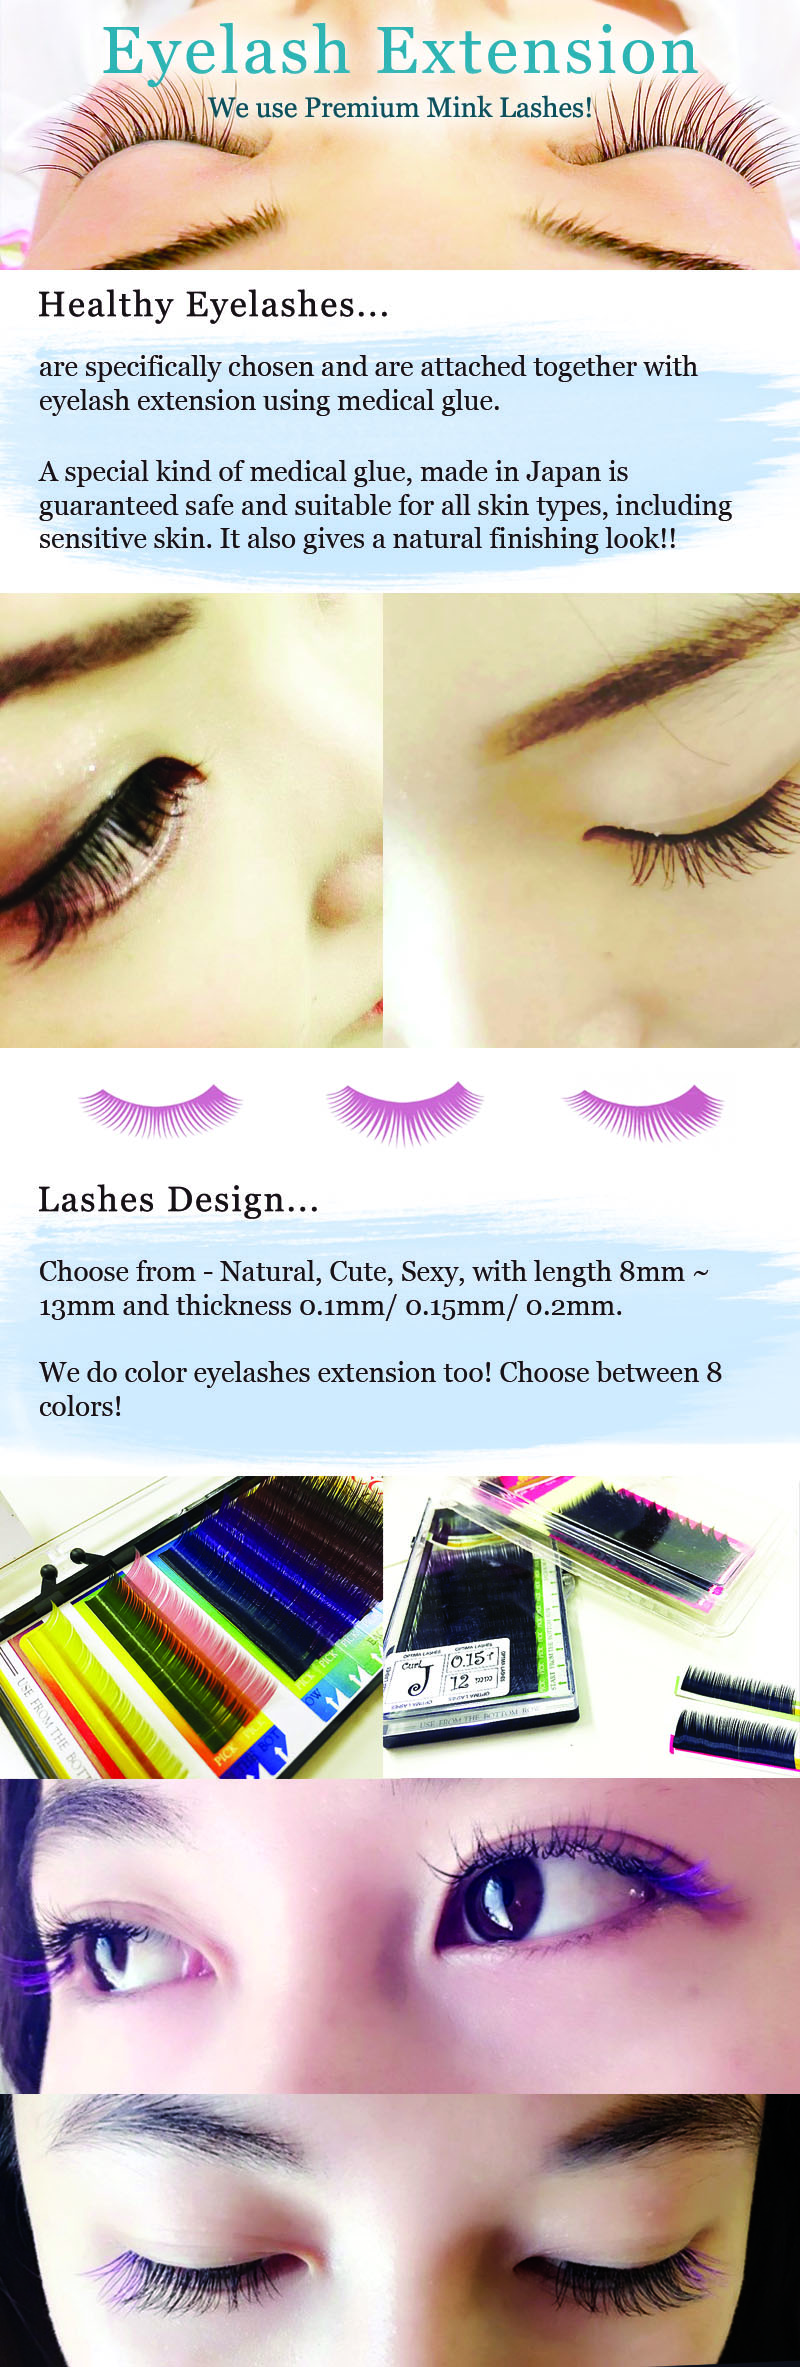 Eyelash Queens Market Japanese Beauty Care Singapore